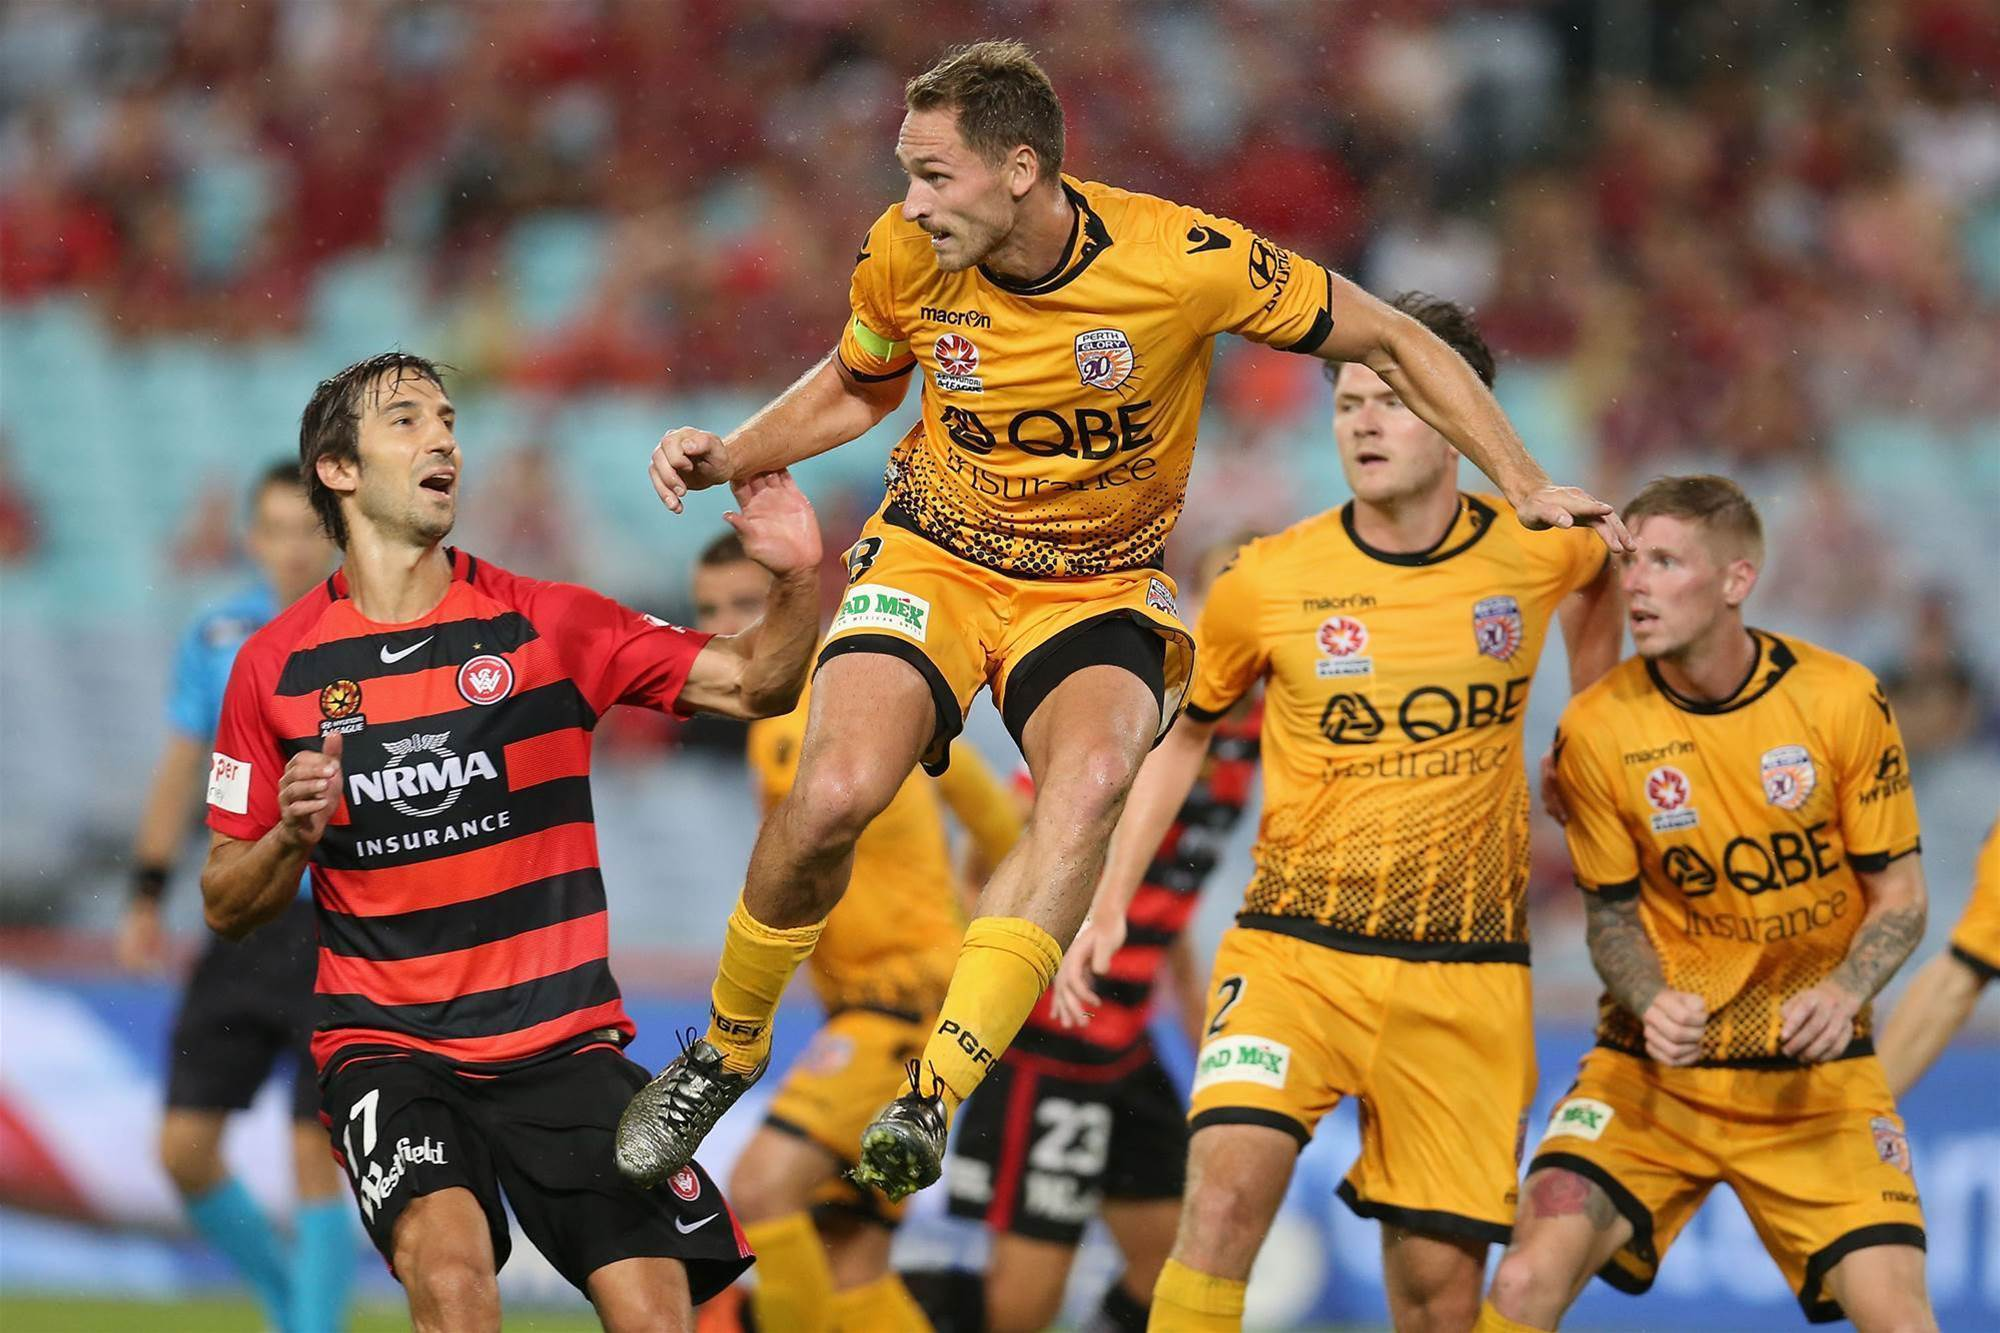 Wanderers v Glory pic special